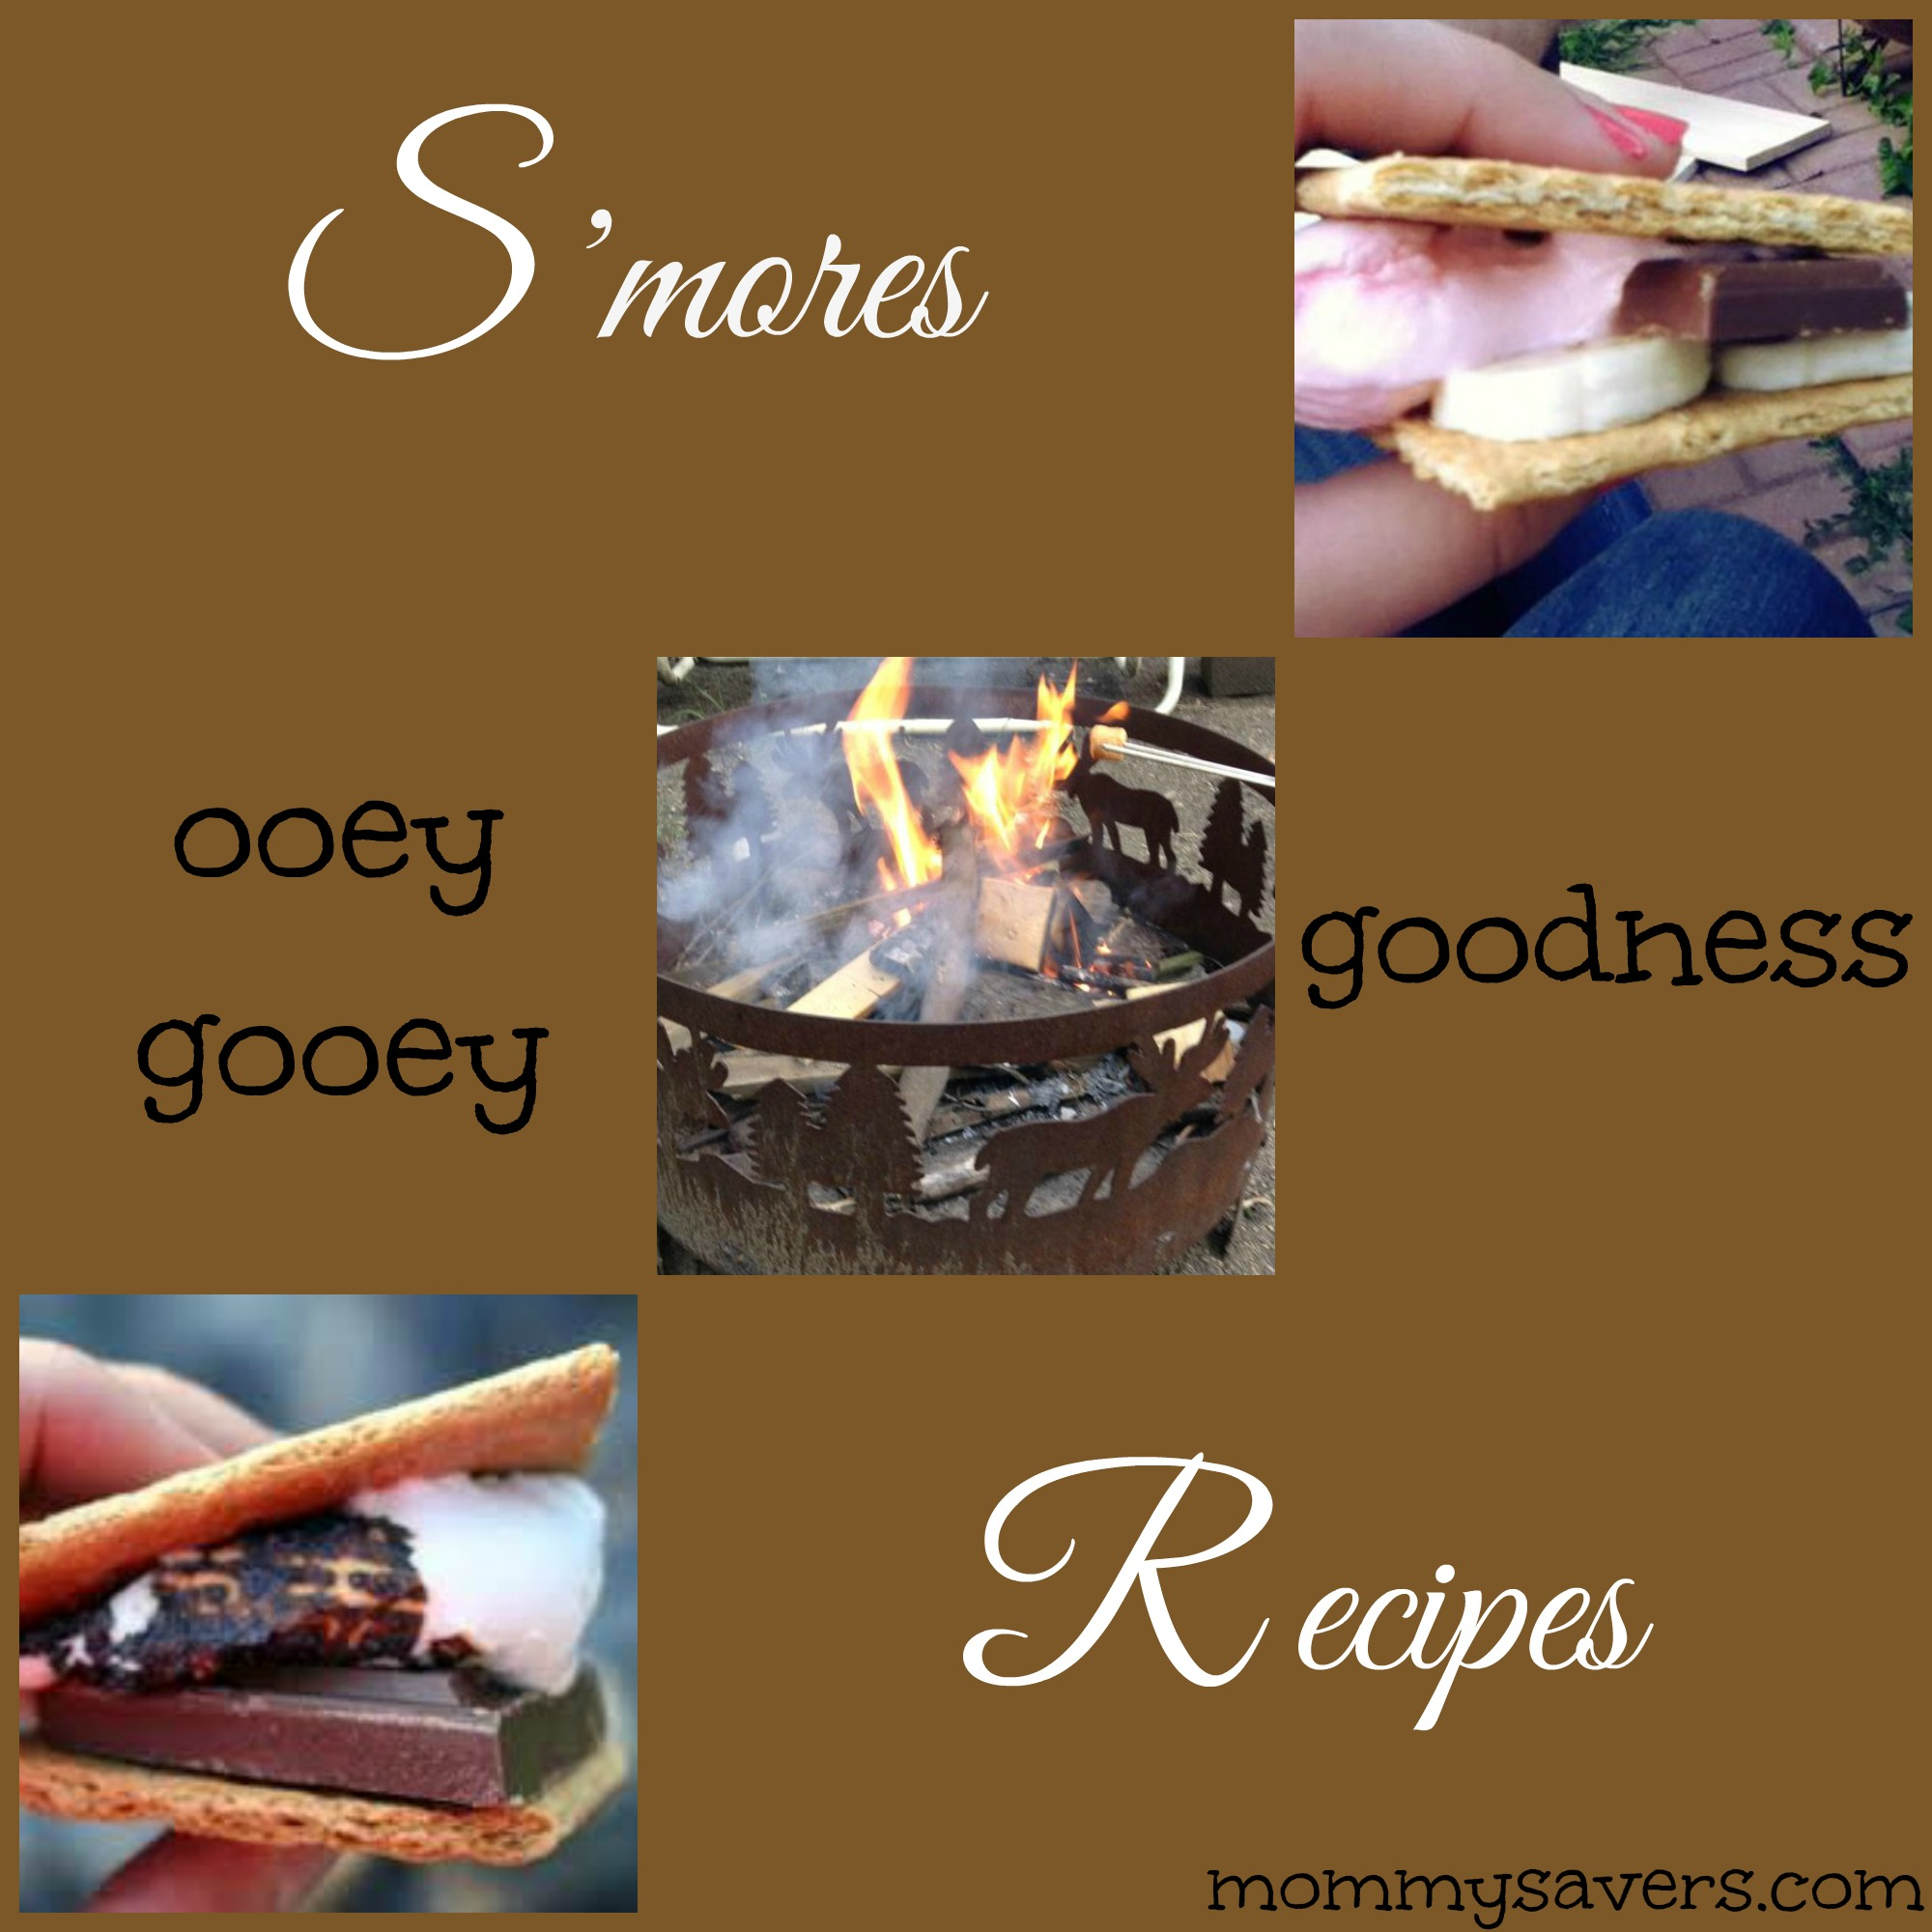 mores Recipes (Ooey, Gooey Goodness) | Mommysavers